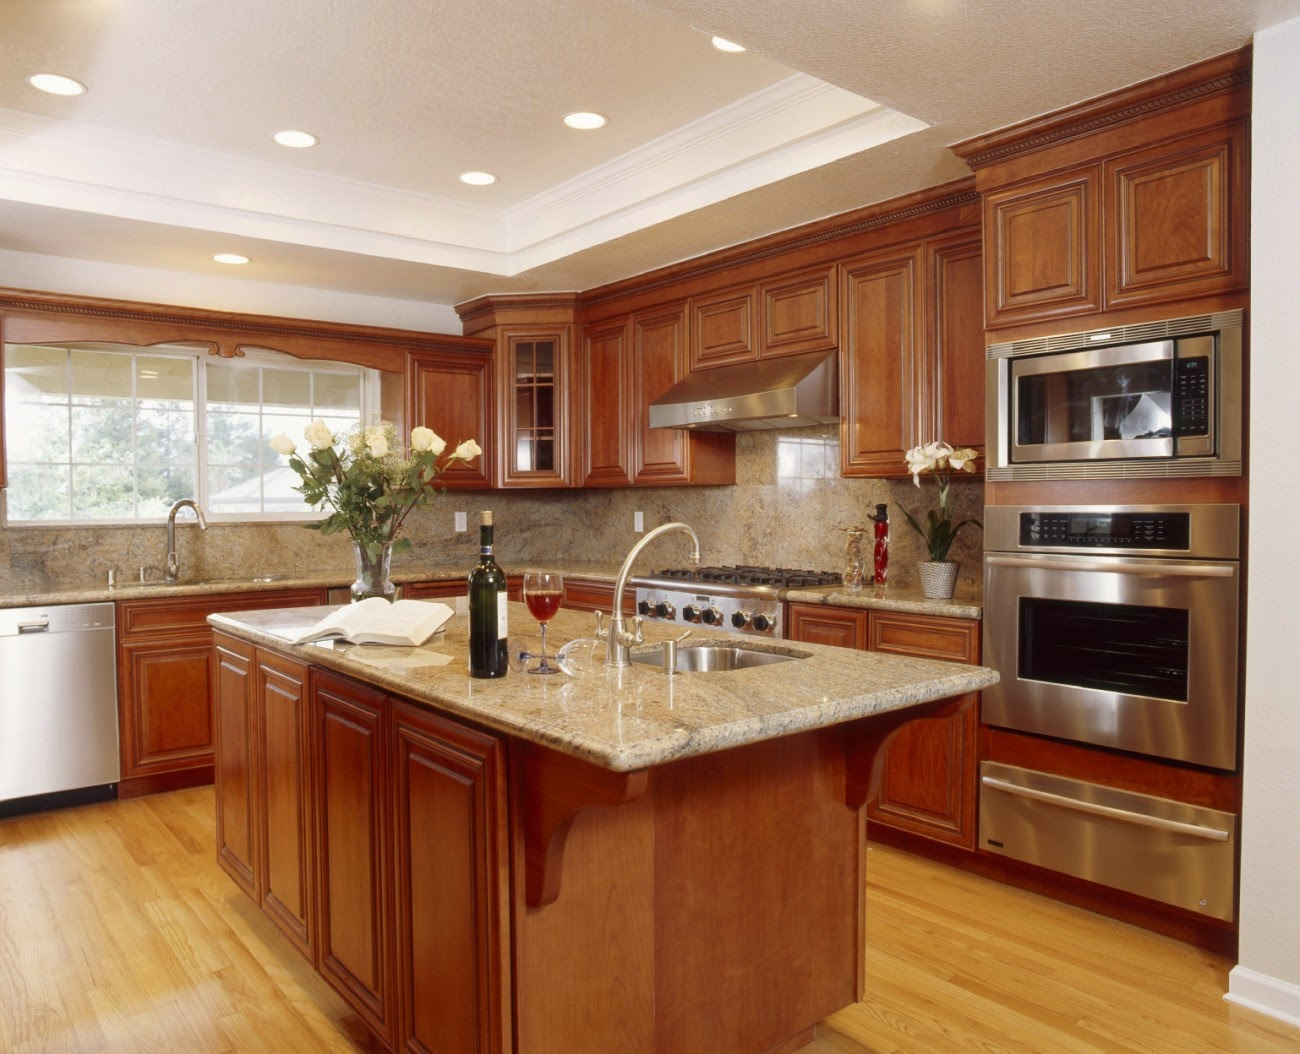 Kitchen Cabinets Sizes the architectural student: design help: kitchen cabinet dimensions